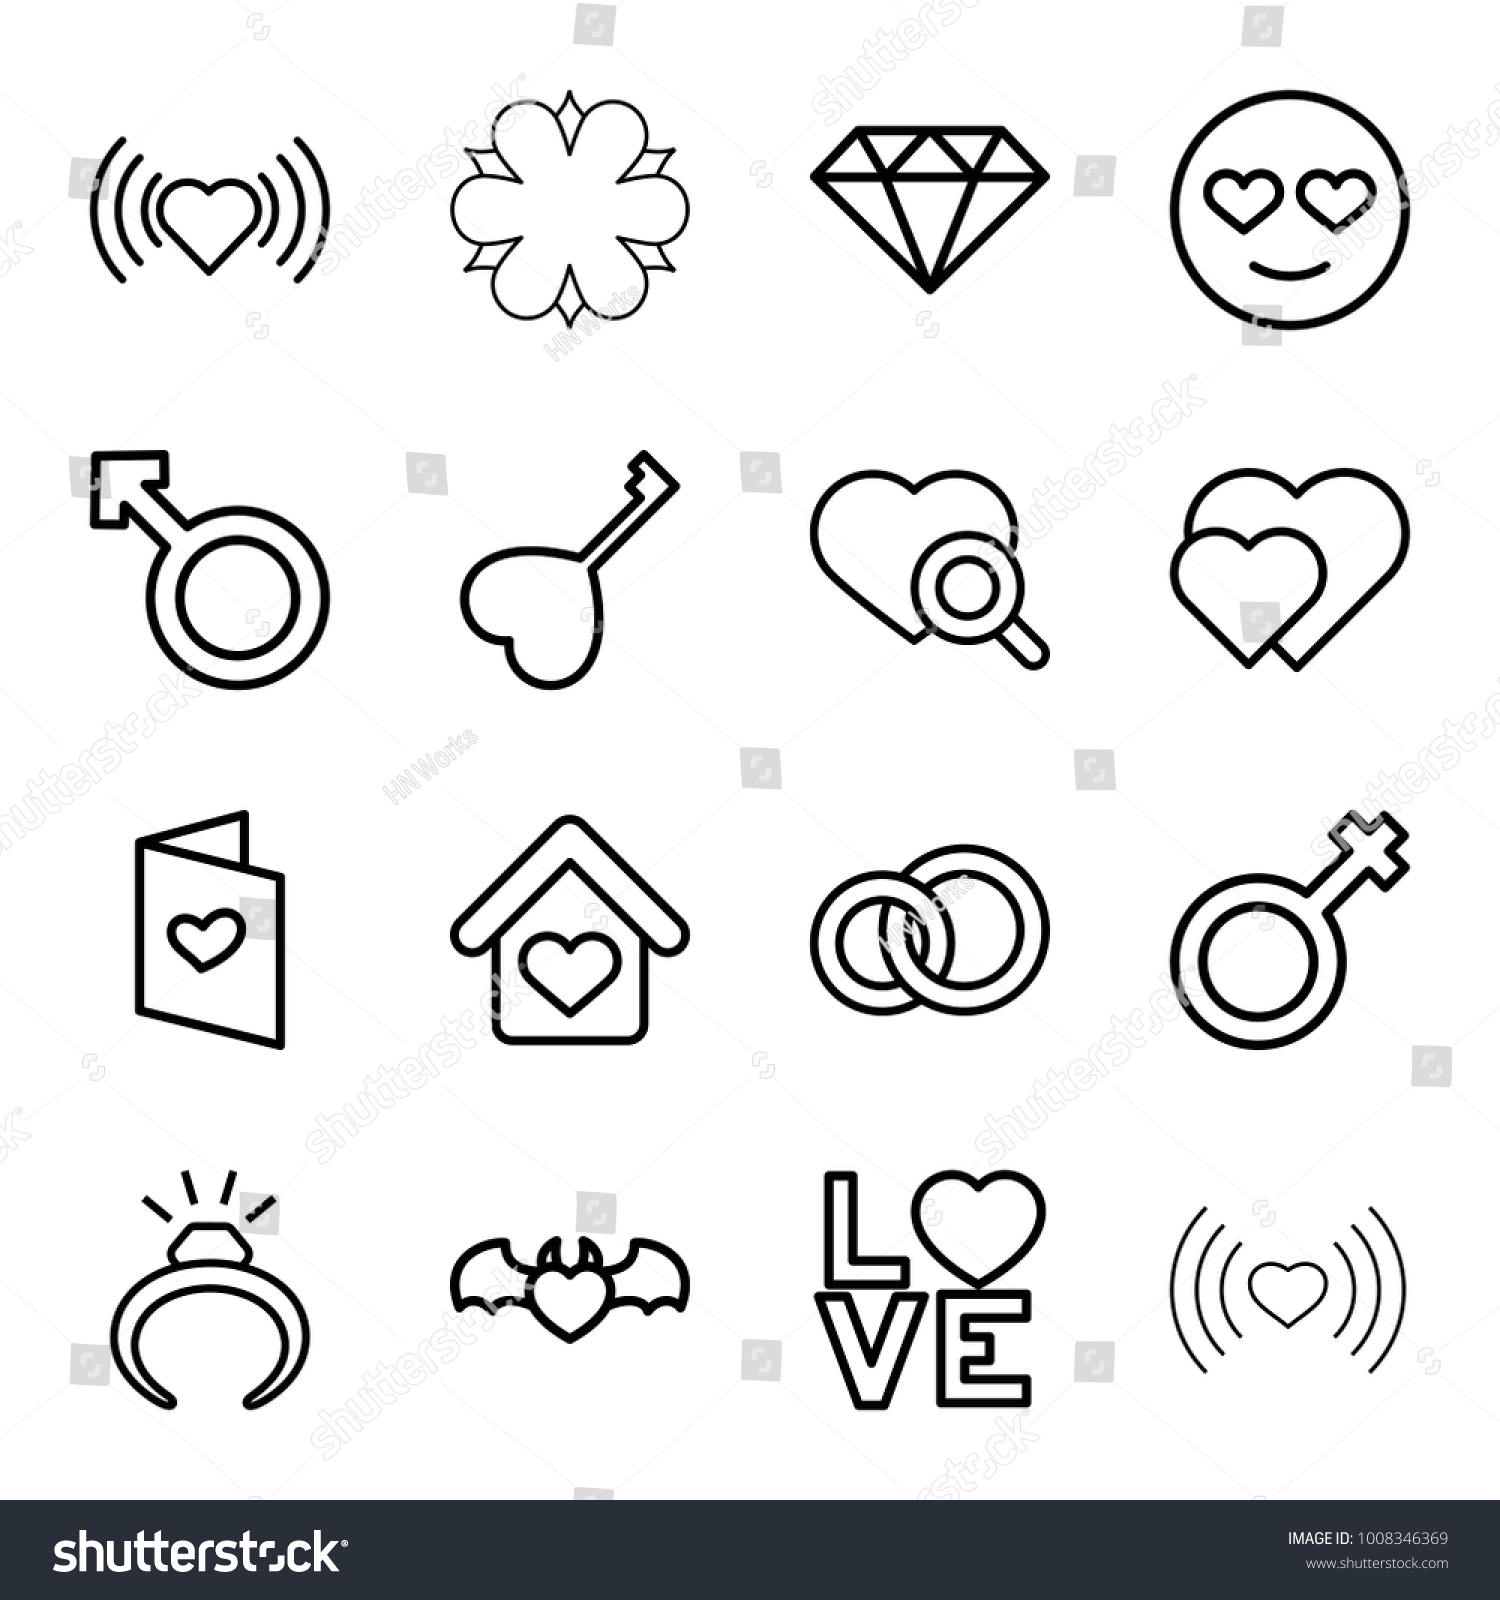 Romance icons set 16 editable outline stock vector 1008346369 romance icons set of 16 editable outline romance icons such as ring heart biocorpaavc Images